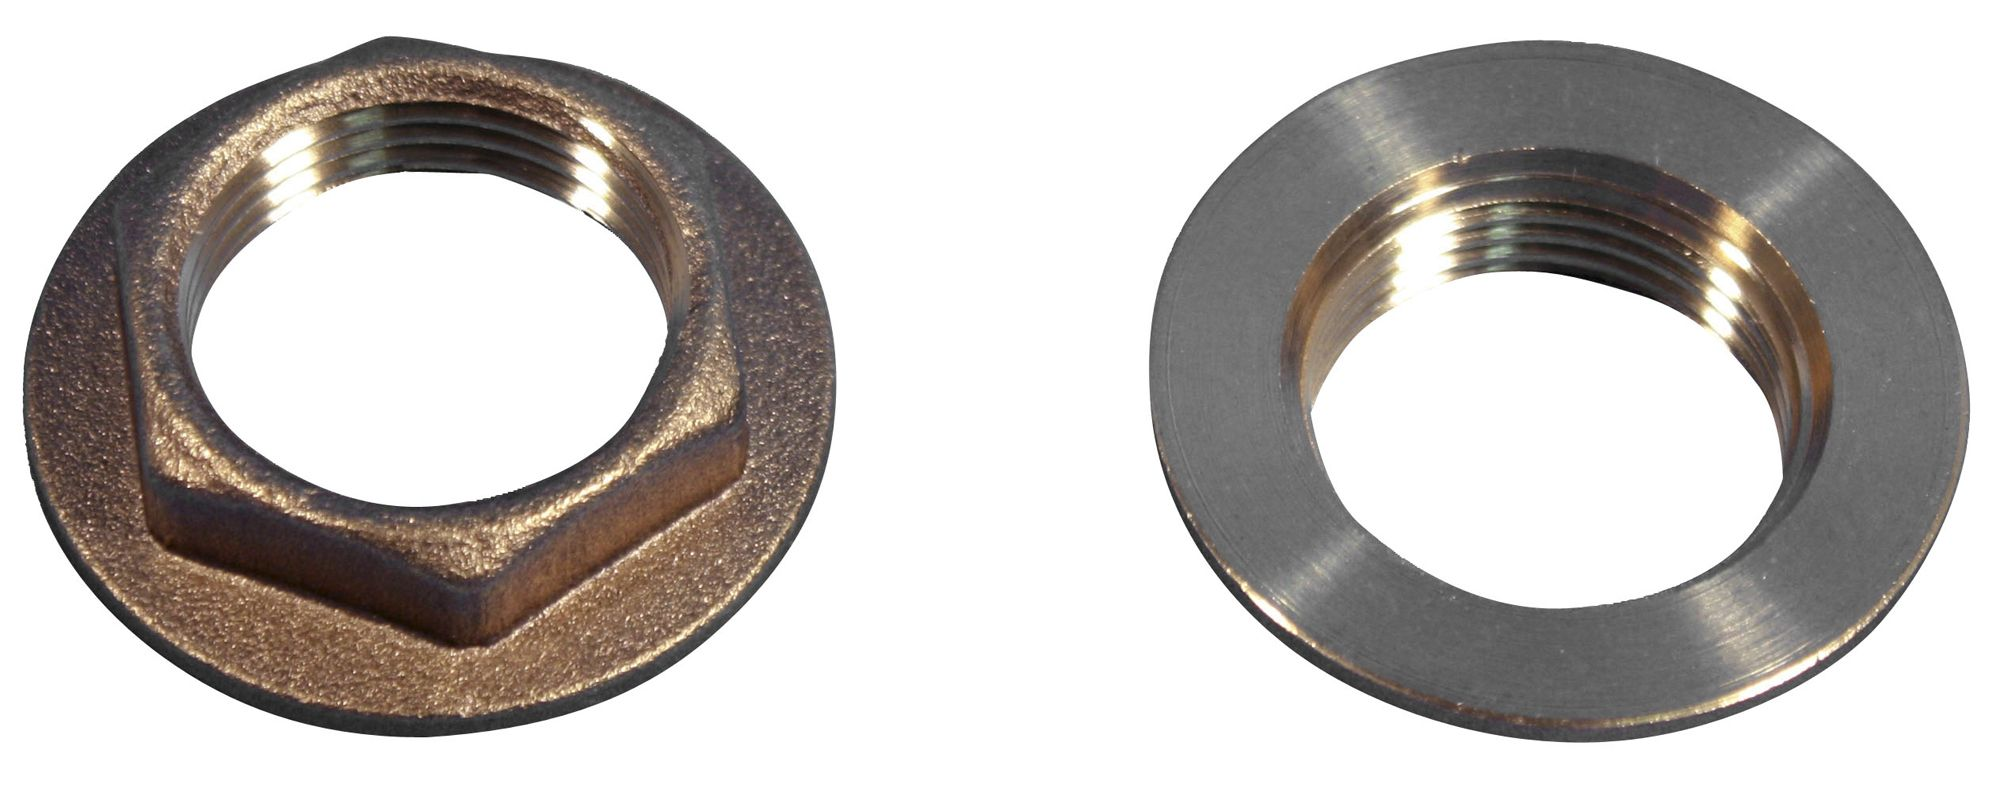 Plumbsure Brass Threaded Flanged Backnut Thread 3 4